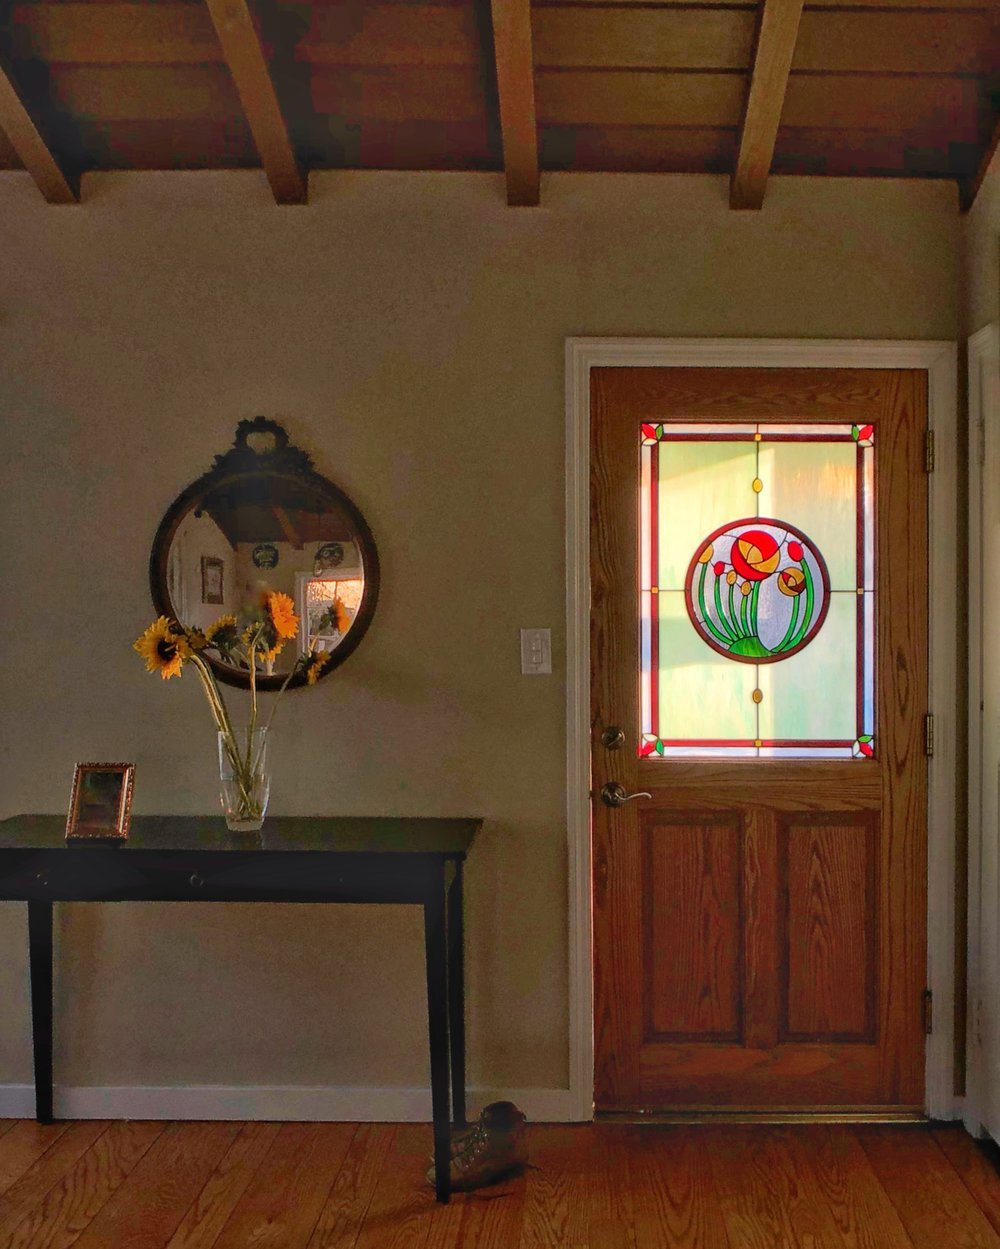 leaded glass stained glass art glass bay area custom design legacy glass studios design front door flowers front entry green light red border leaves abstract sunset light opalescent.jpg